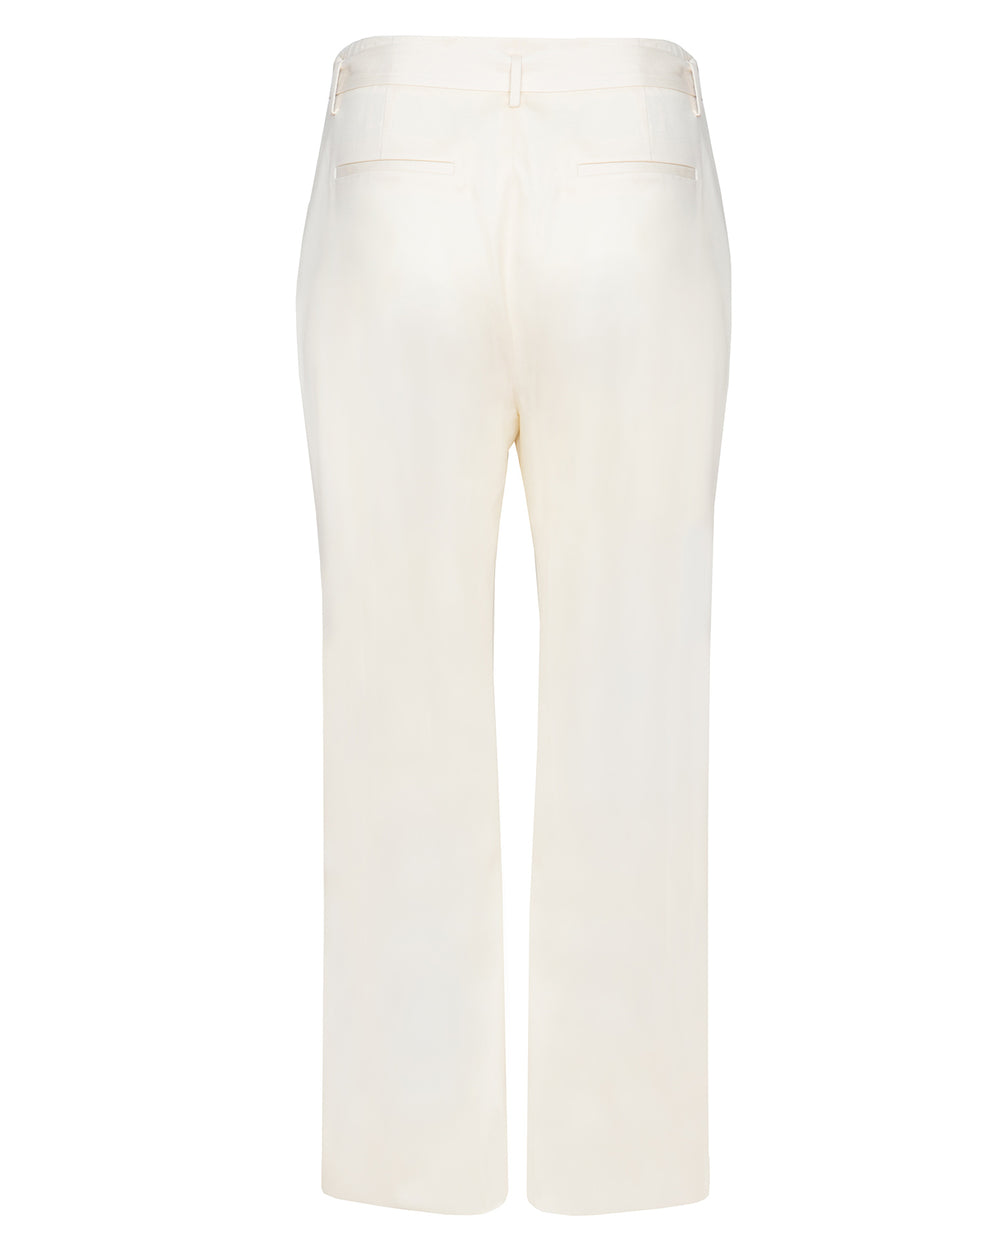 Luxe Wool Twill High Waisted Belted Pant